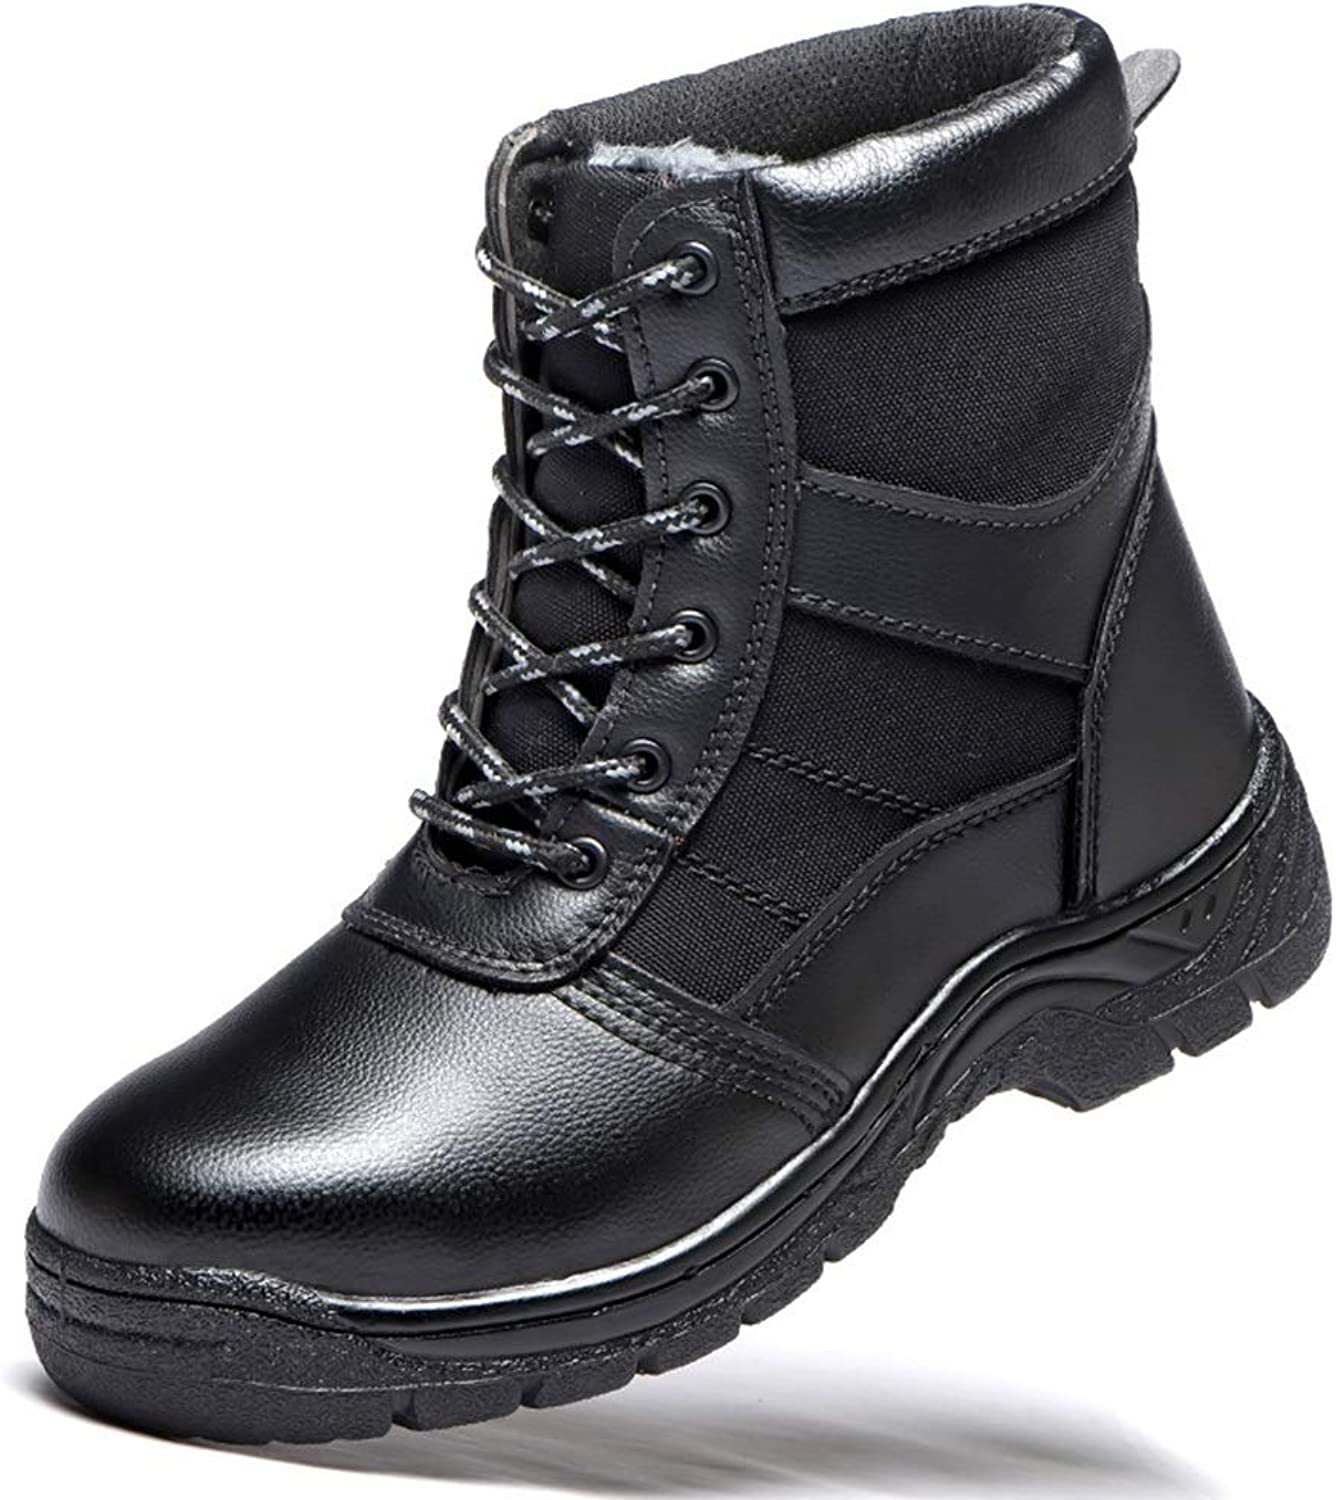 Easy Go Shopping Anti-smash, Stab, Safety shoes, Safety shoes Warm Cotton shoes, Safety shoes, Safety shoes, Cricket shoes (color   Black, Size   42)